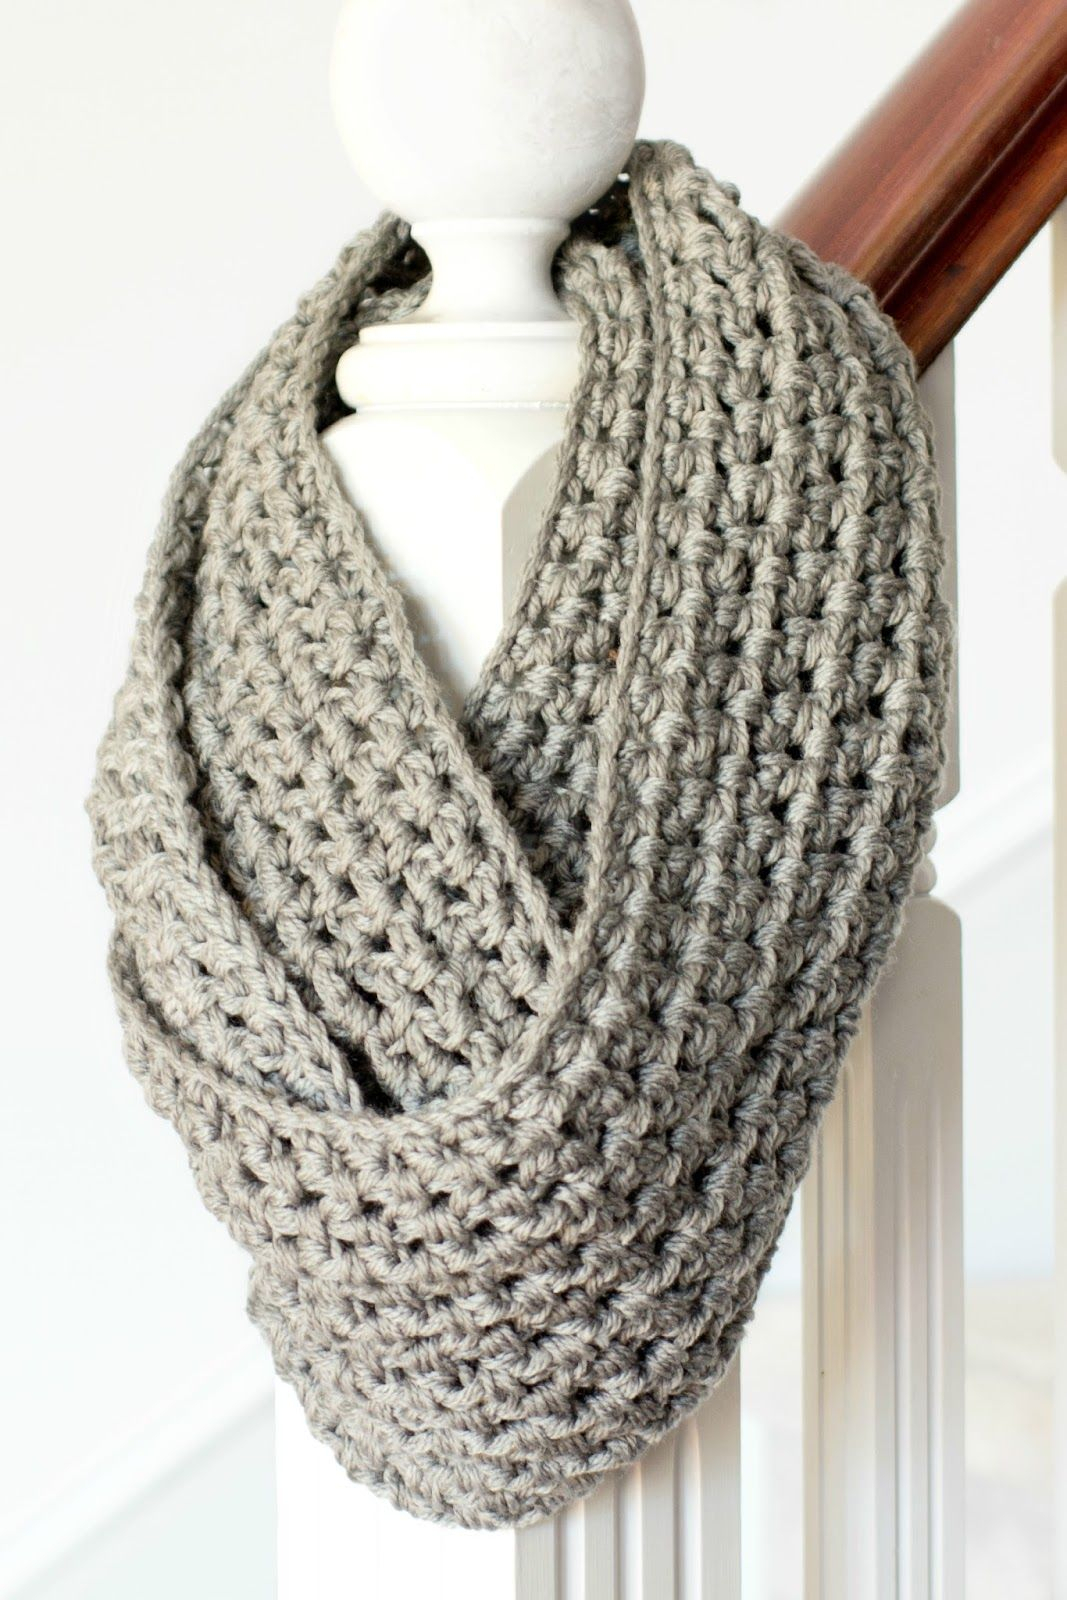 Best Products to Make with the Chunky Yarn Crochet Pattern Chunky Yarn Crochet Patterns Basic Chunky Infinity Scarf Crochet